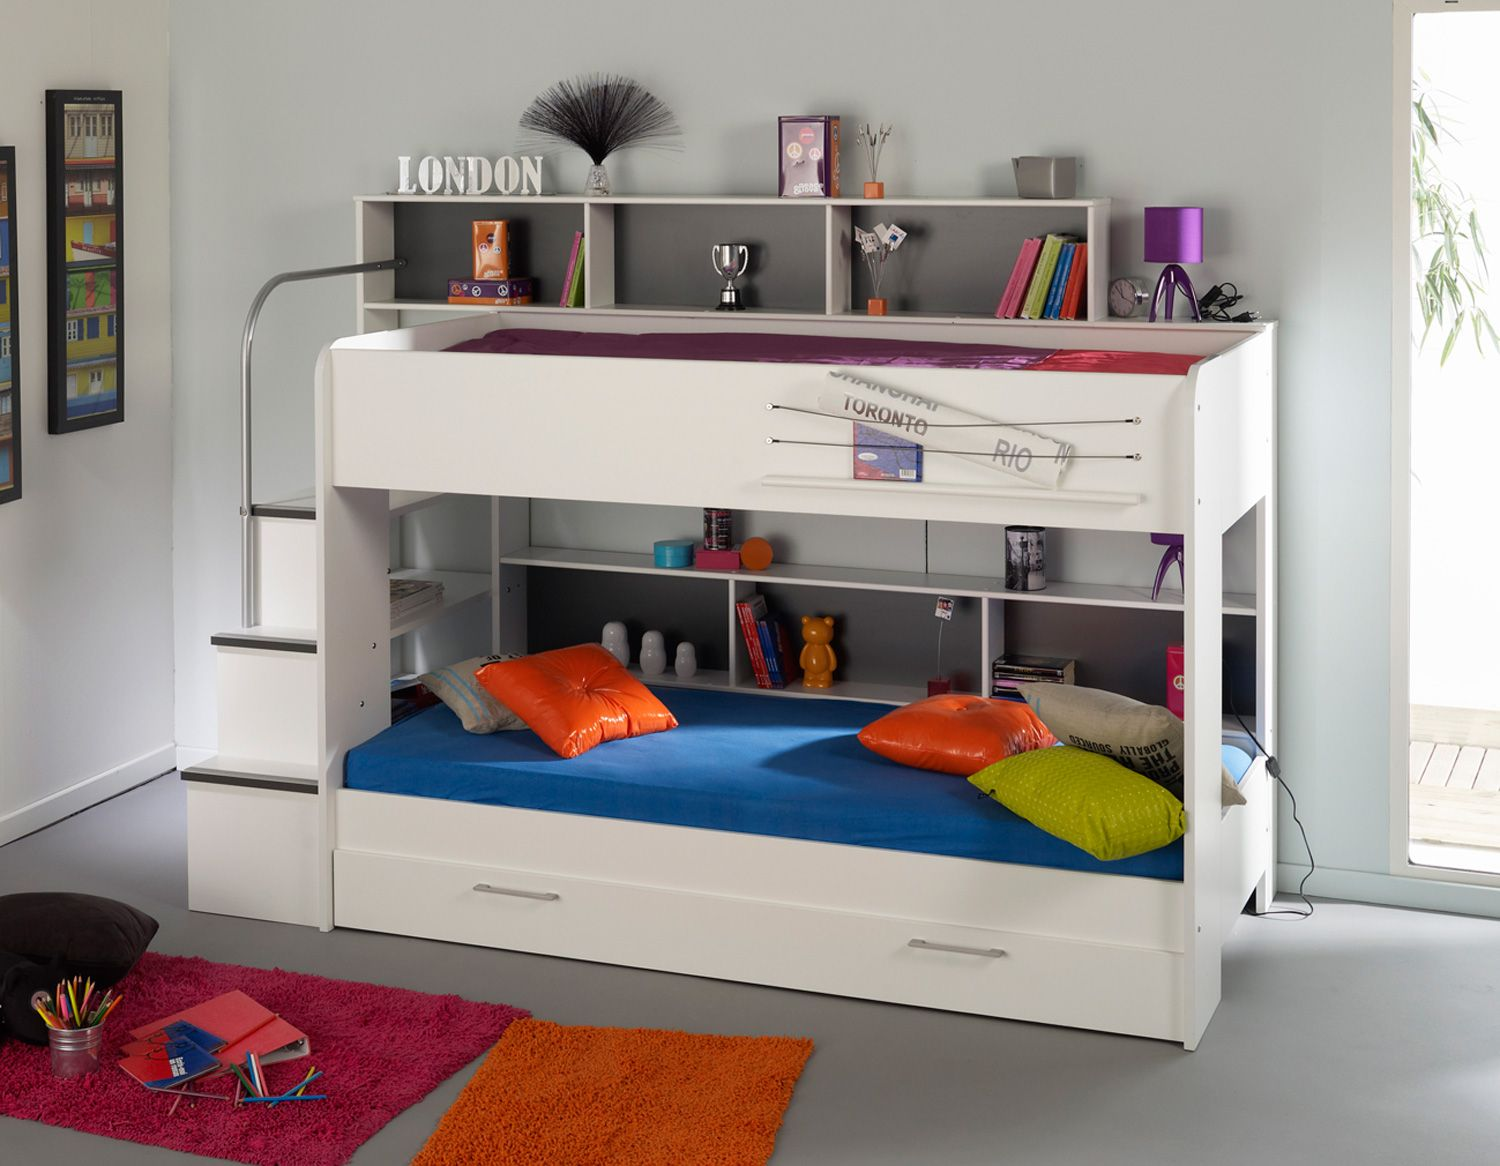 Beautiful low white space saving bunk bed design inspiration with hidden drawer and bookshelf above for small kids room fascinate Bunk Beds for small 30 Space Saving